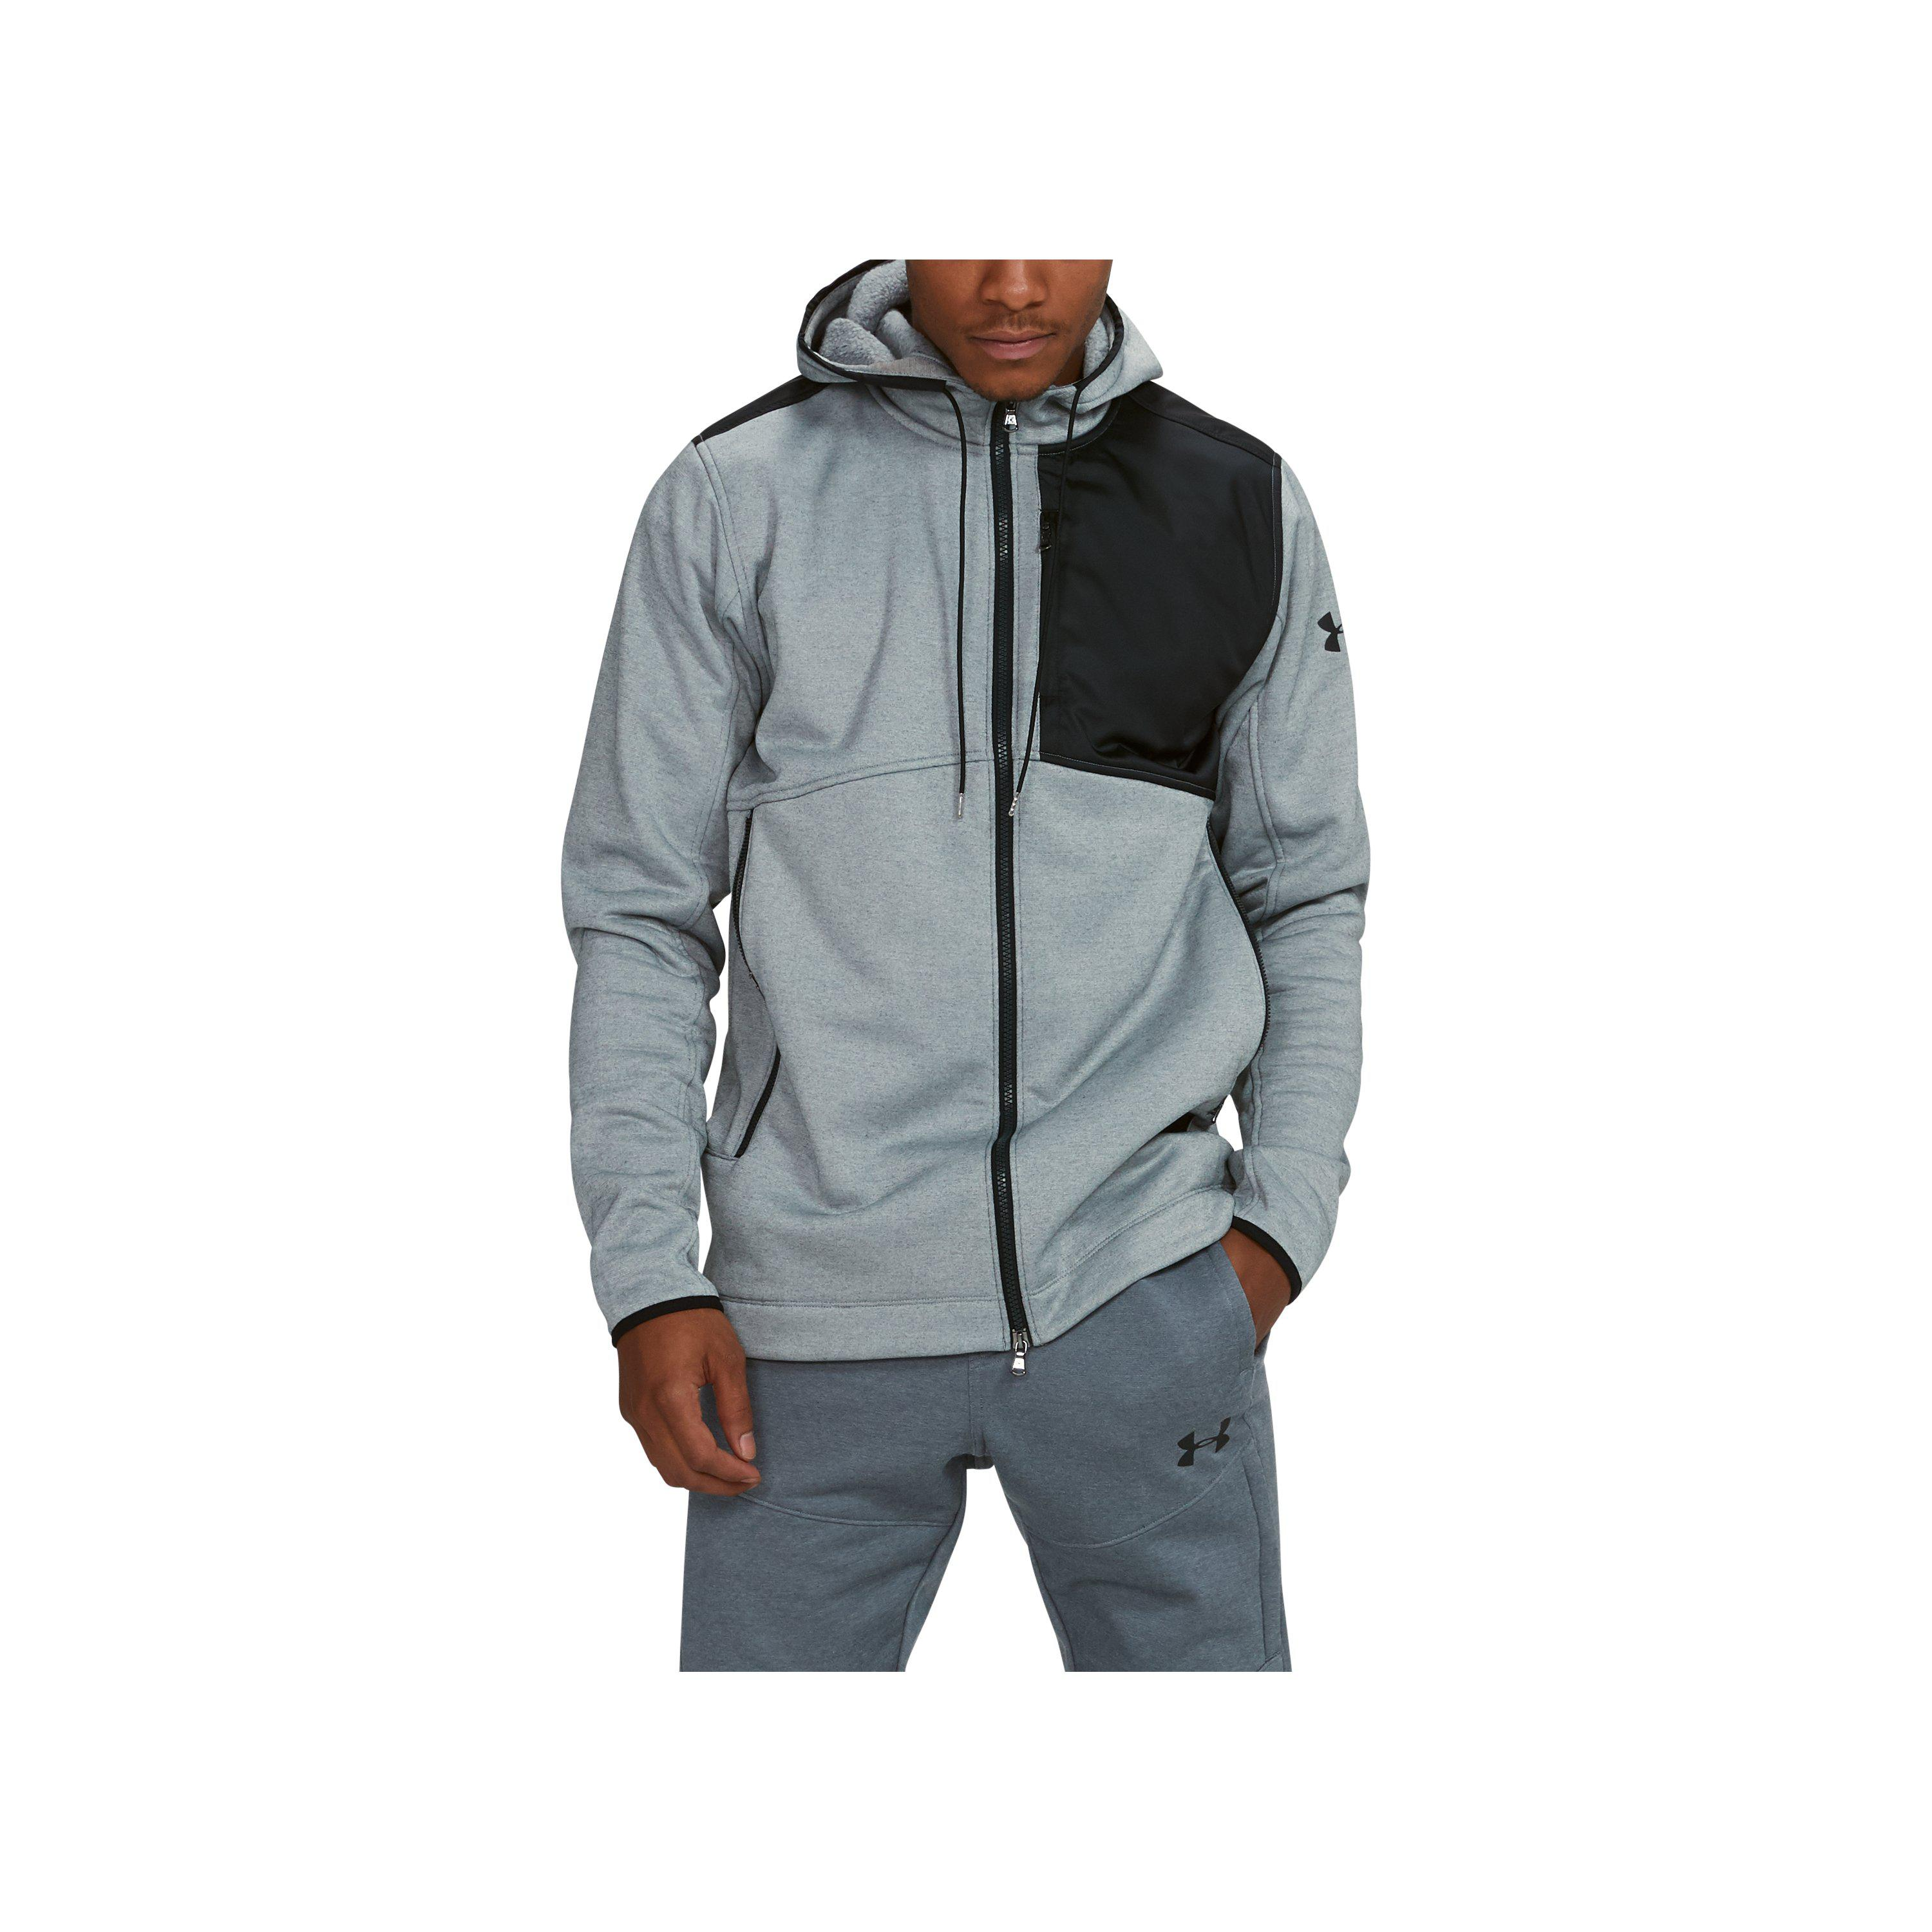 4477431a Under Armour Gray Men's Ua Pursuit Stealth Full Zip Hoodie for men